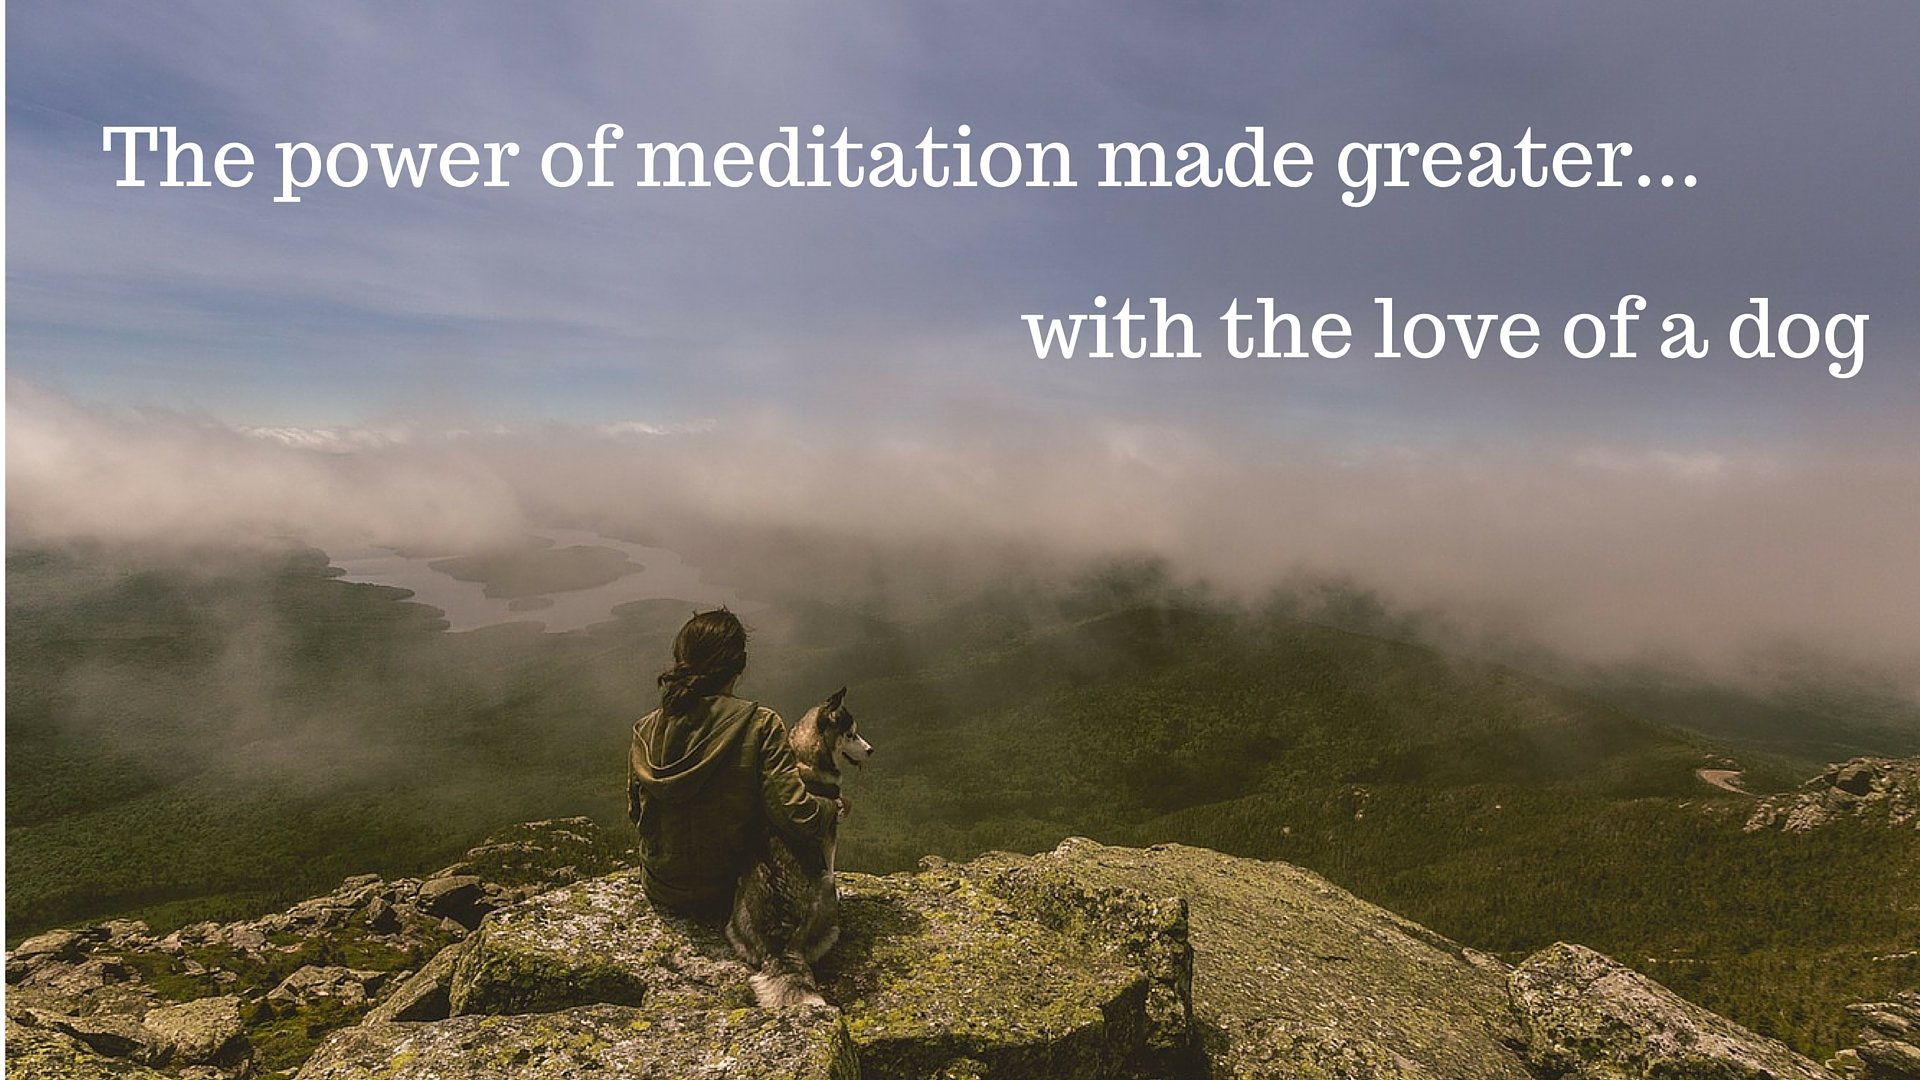 the power of meditation made even greater